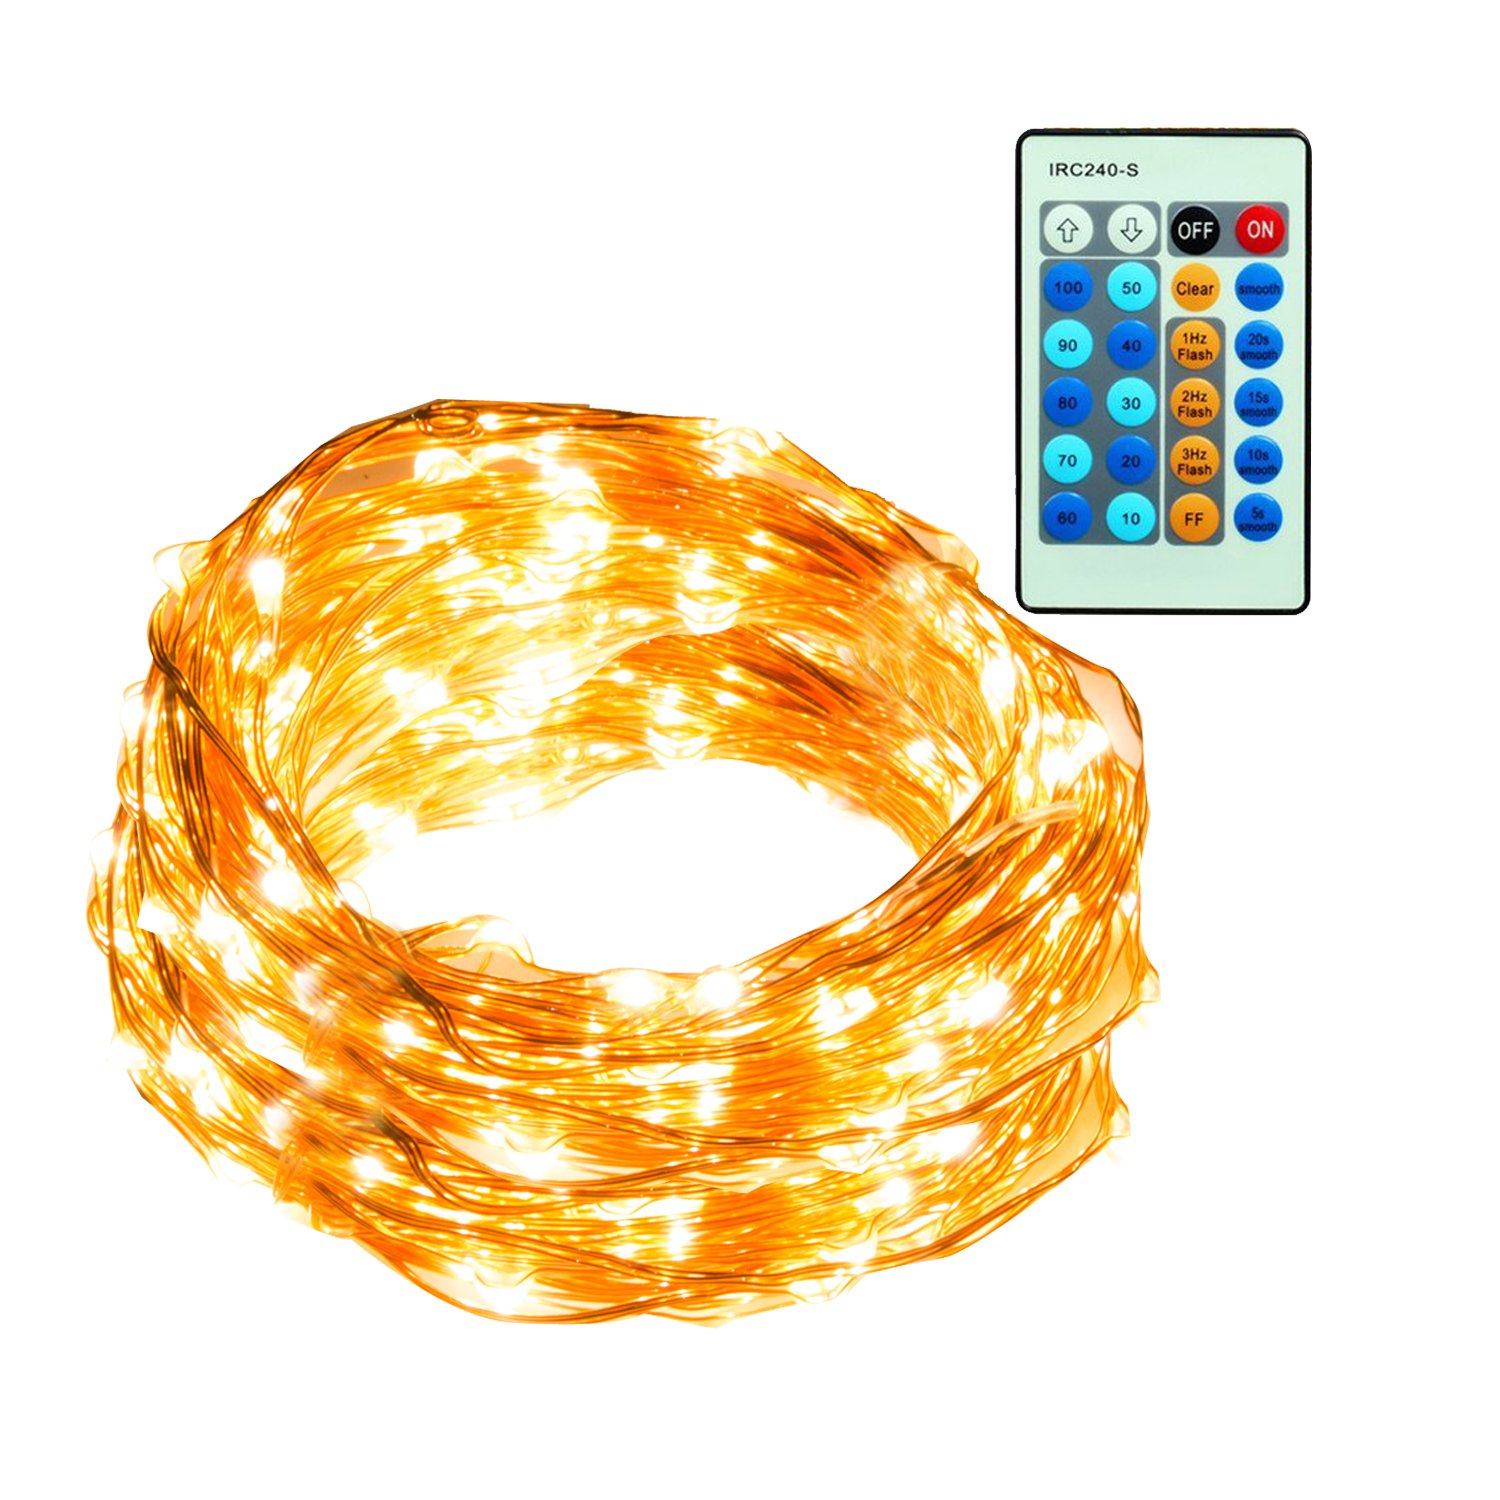 40Ft 120 LED Fairy Starry Christmas Copper Wire String Dimmable with Remote Control. Waterproof Decorative Lights for Bedroom, Patio, Dining room, Garden, Gate, Yard, Parties, Wedding,Bed Room.